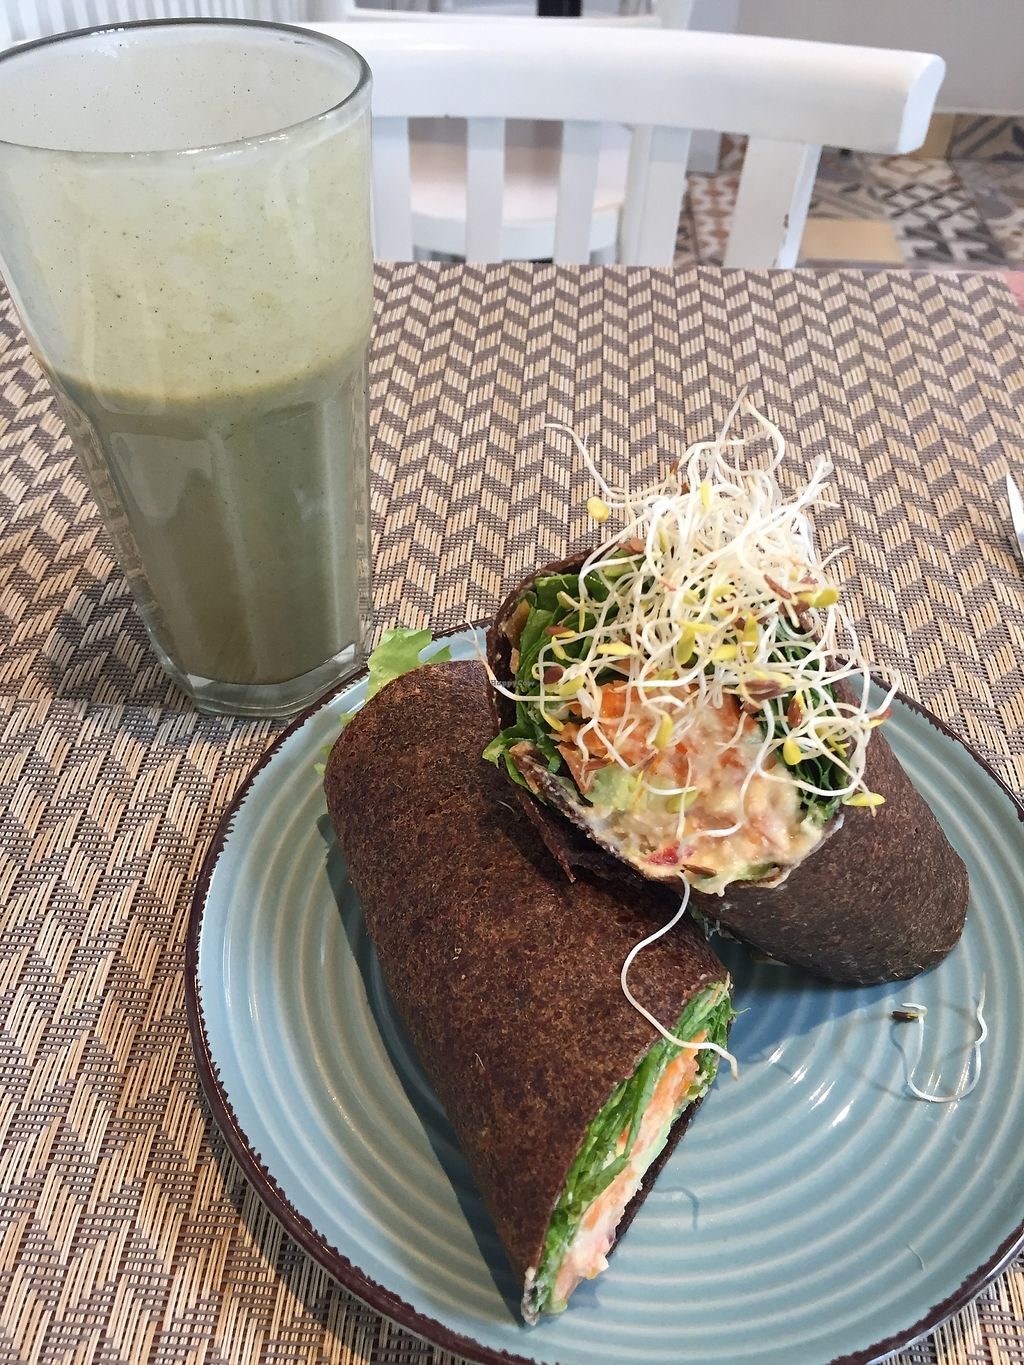 "Photo of Raw Cafe - Independencia  by <a href=""/members/profile/joegelay"">joegelay</a> <br/>Linaza wrap and green smoothie <br/> December 20, 2017  - <a href='/contact/abuse/image/41640/337380'>Report</a>"